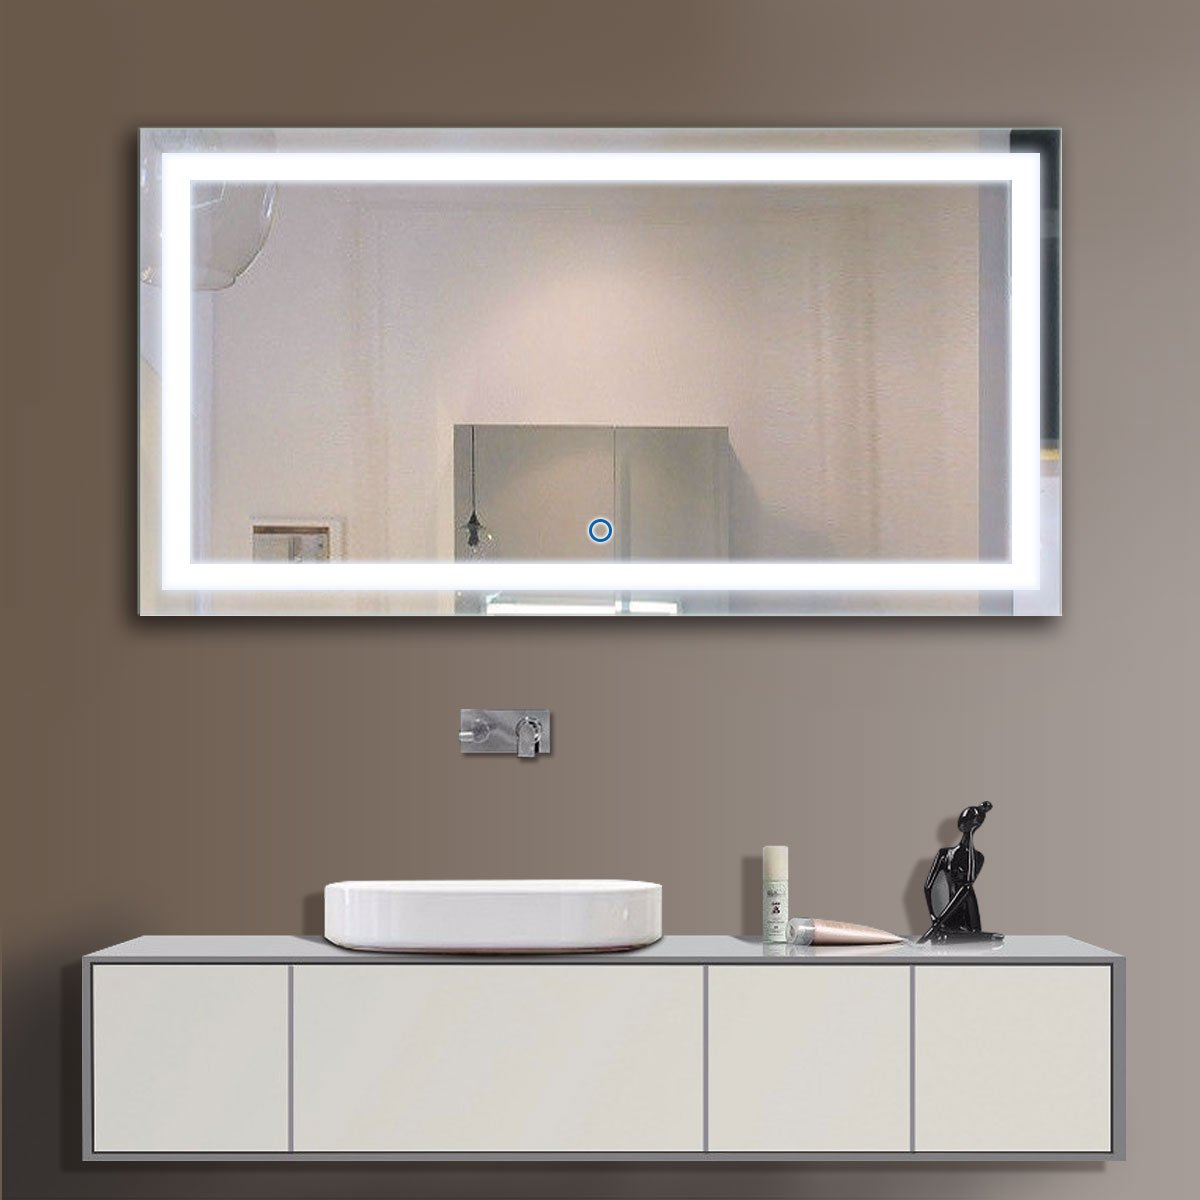 48 x 24 In Horizontal LED Bathroom Silvered Mirror with Touch Button (CK010-E)